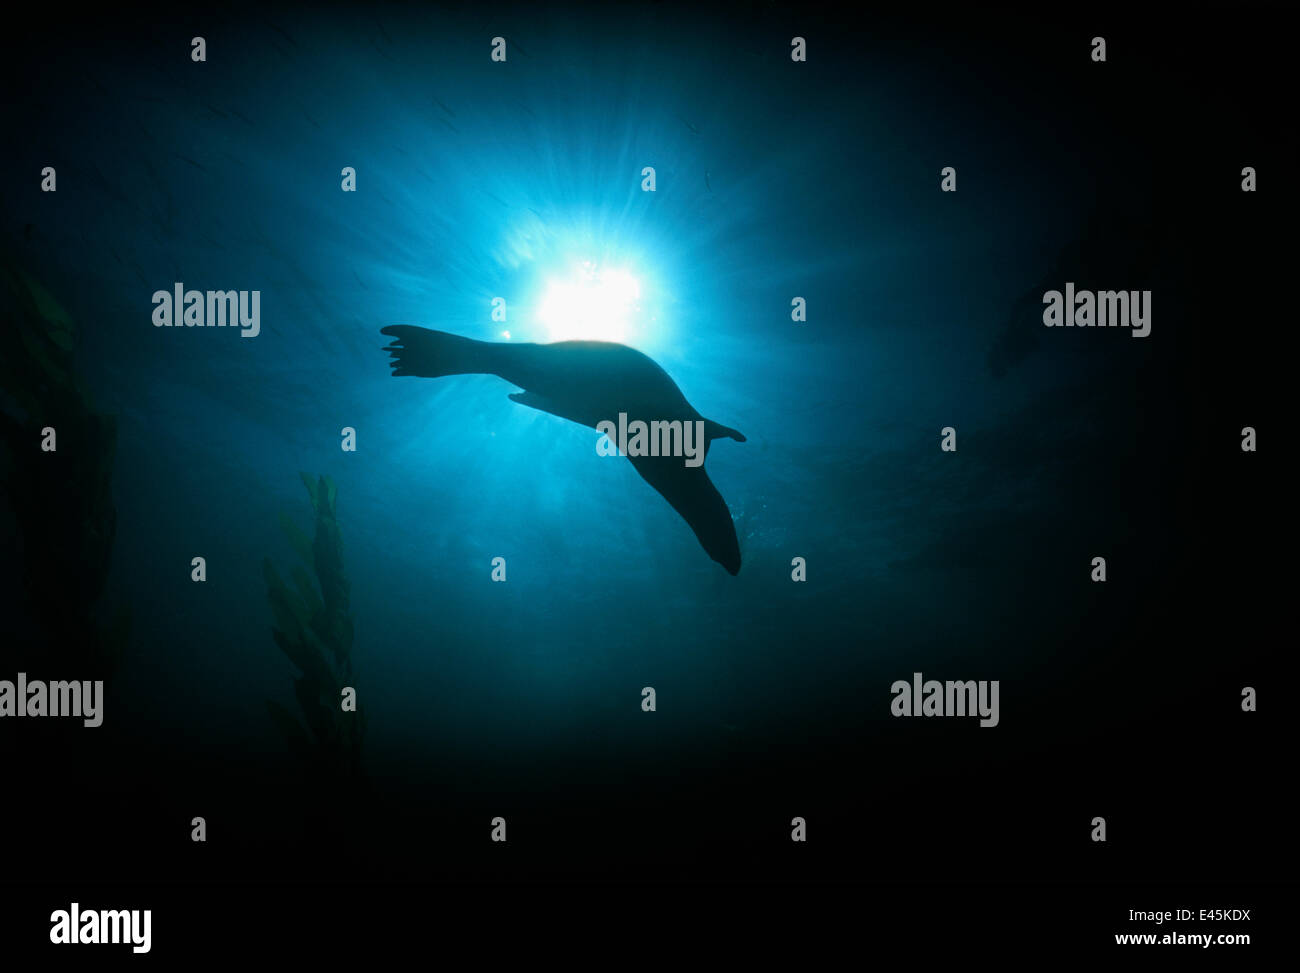 Silhouette of Californian sealion (Zalophus californianus) swimming underwater, Anacapa Island, California, Pacific - Stock Image